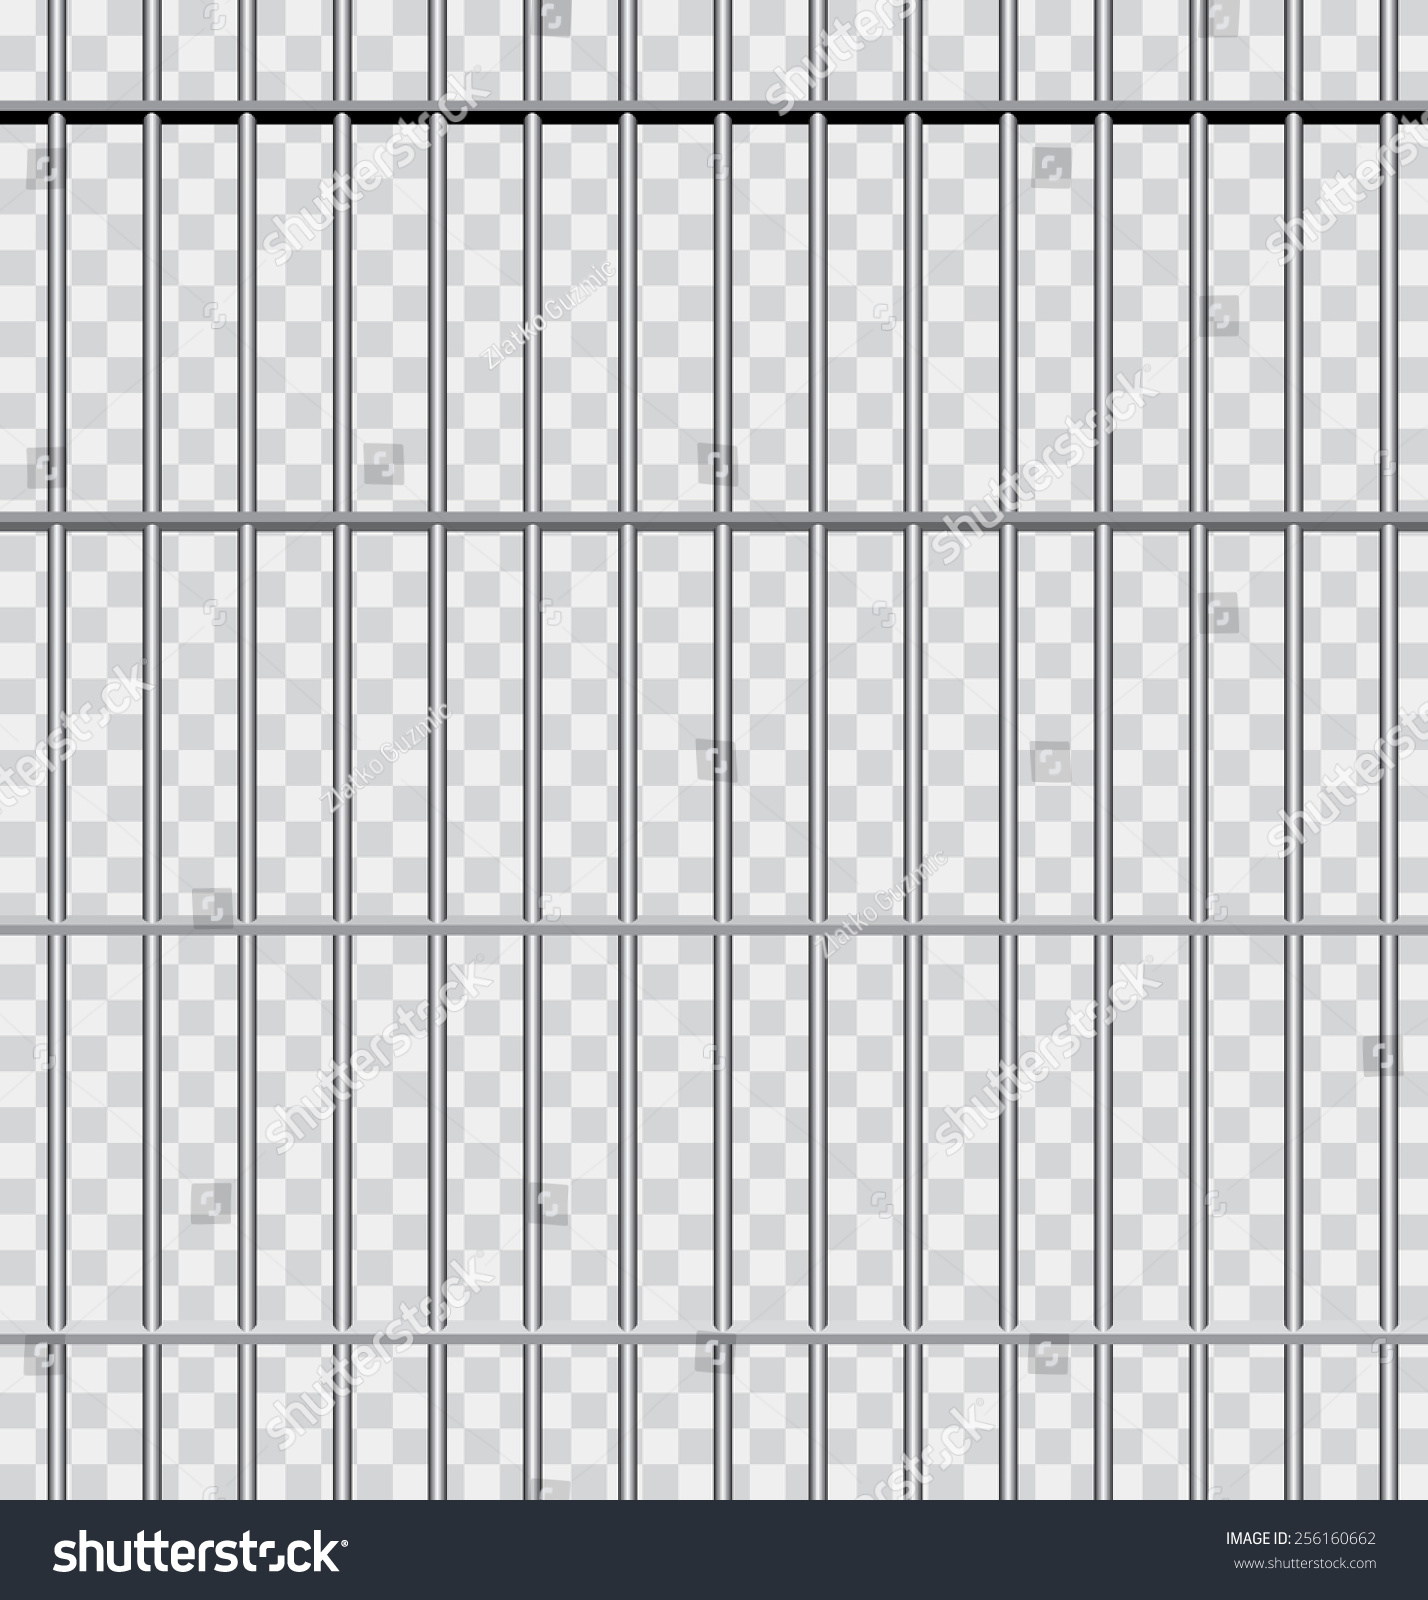 Vector Background Jail Bars Stock Vector 256160662